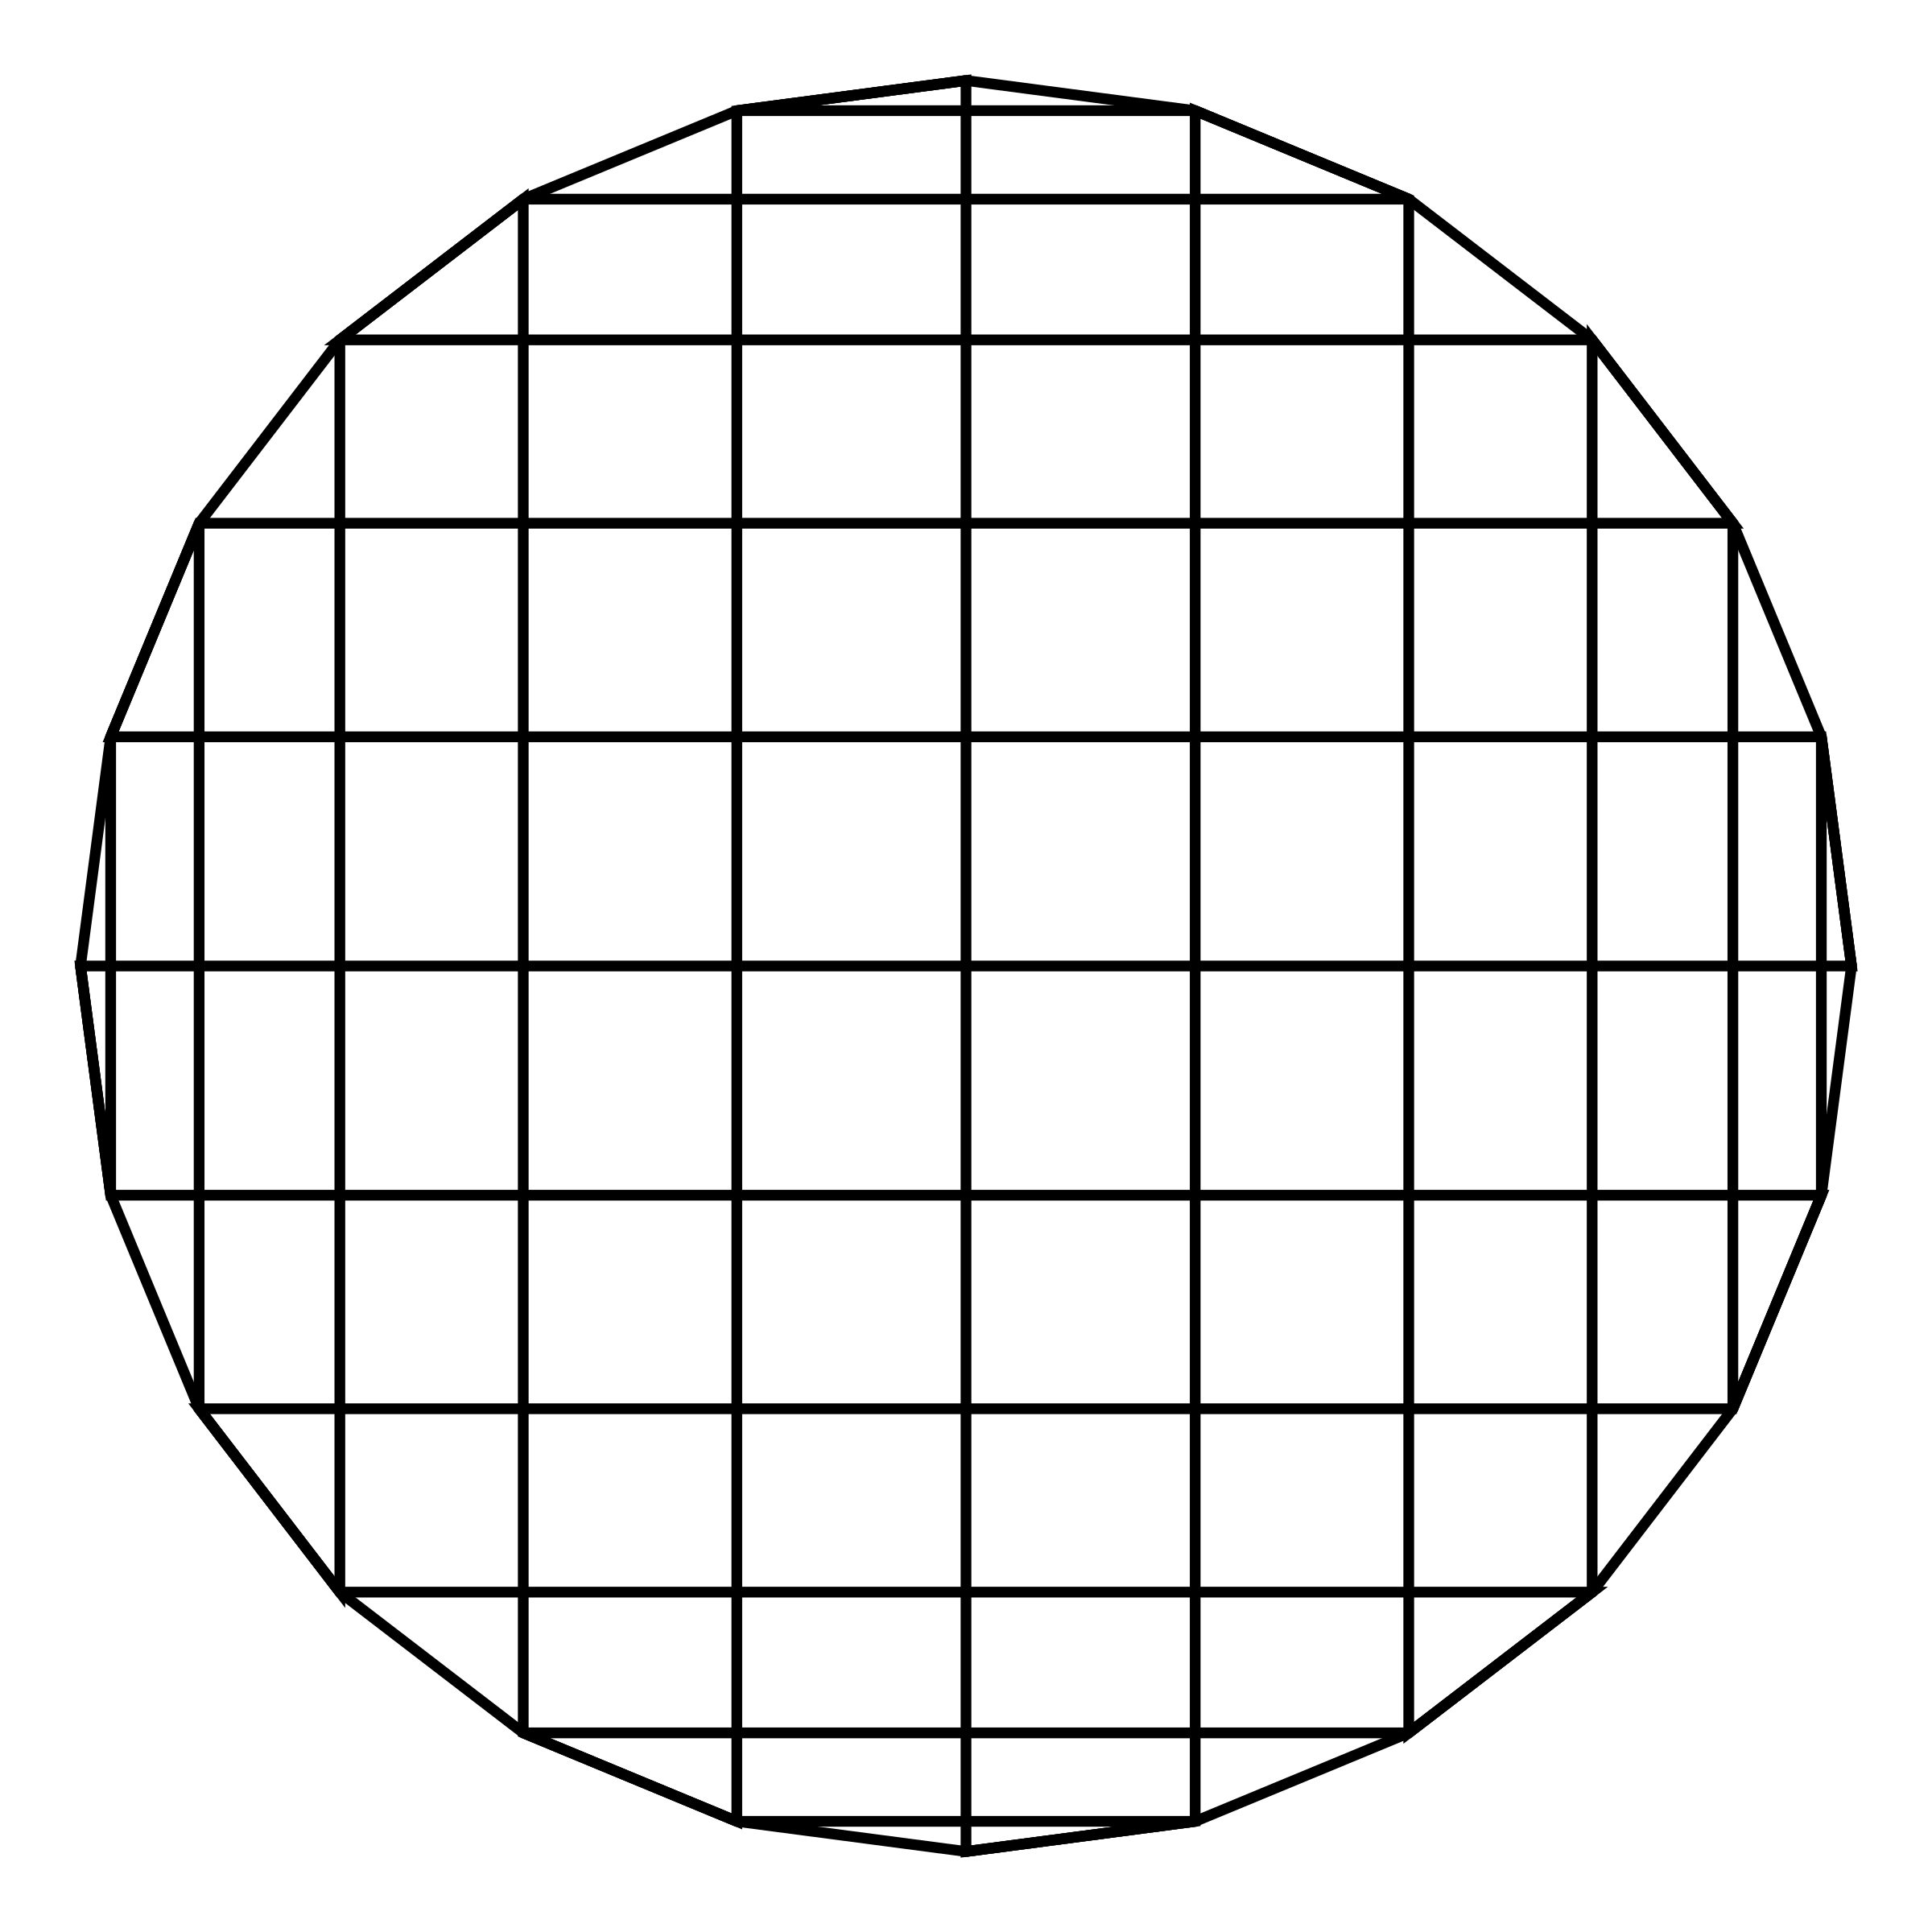 24gon rectangle grid by 10binary